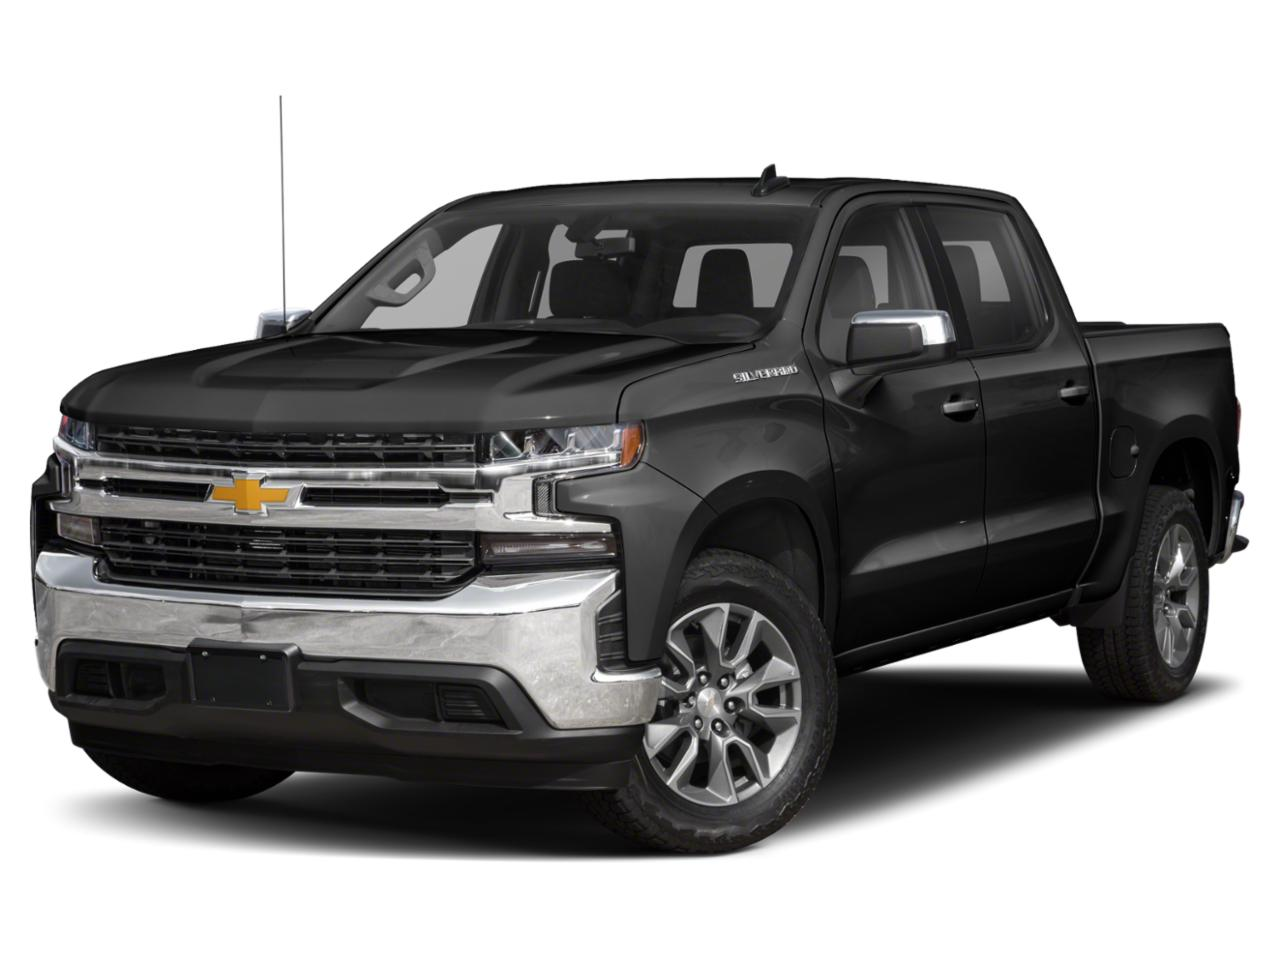 2020 Chevrolet Silverado 1500 Vehicle Photo in Nashua, NH 03060